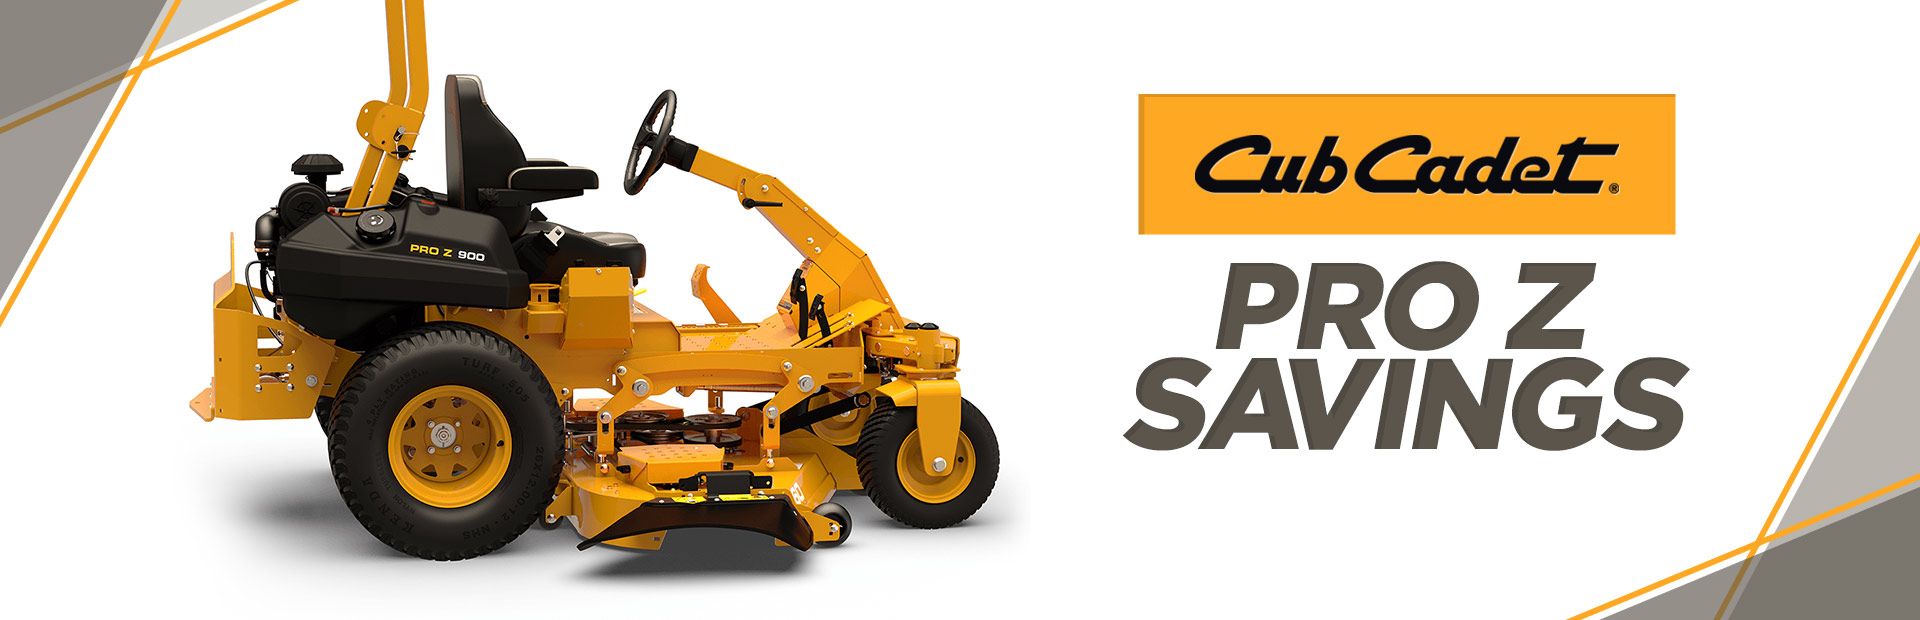 Cub Cadet: PRO Z Savings